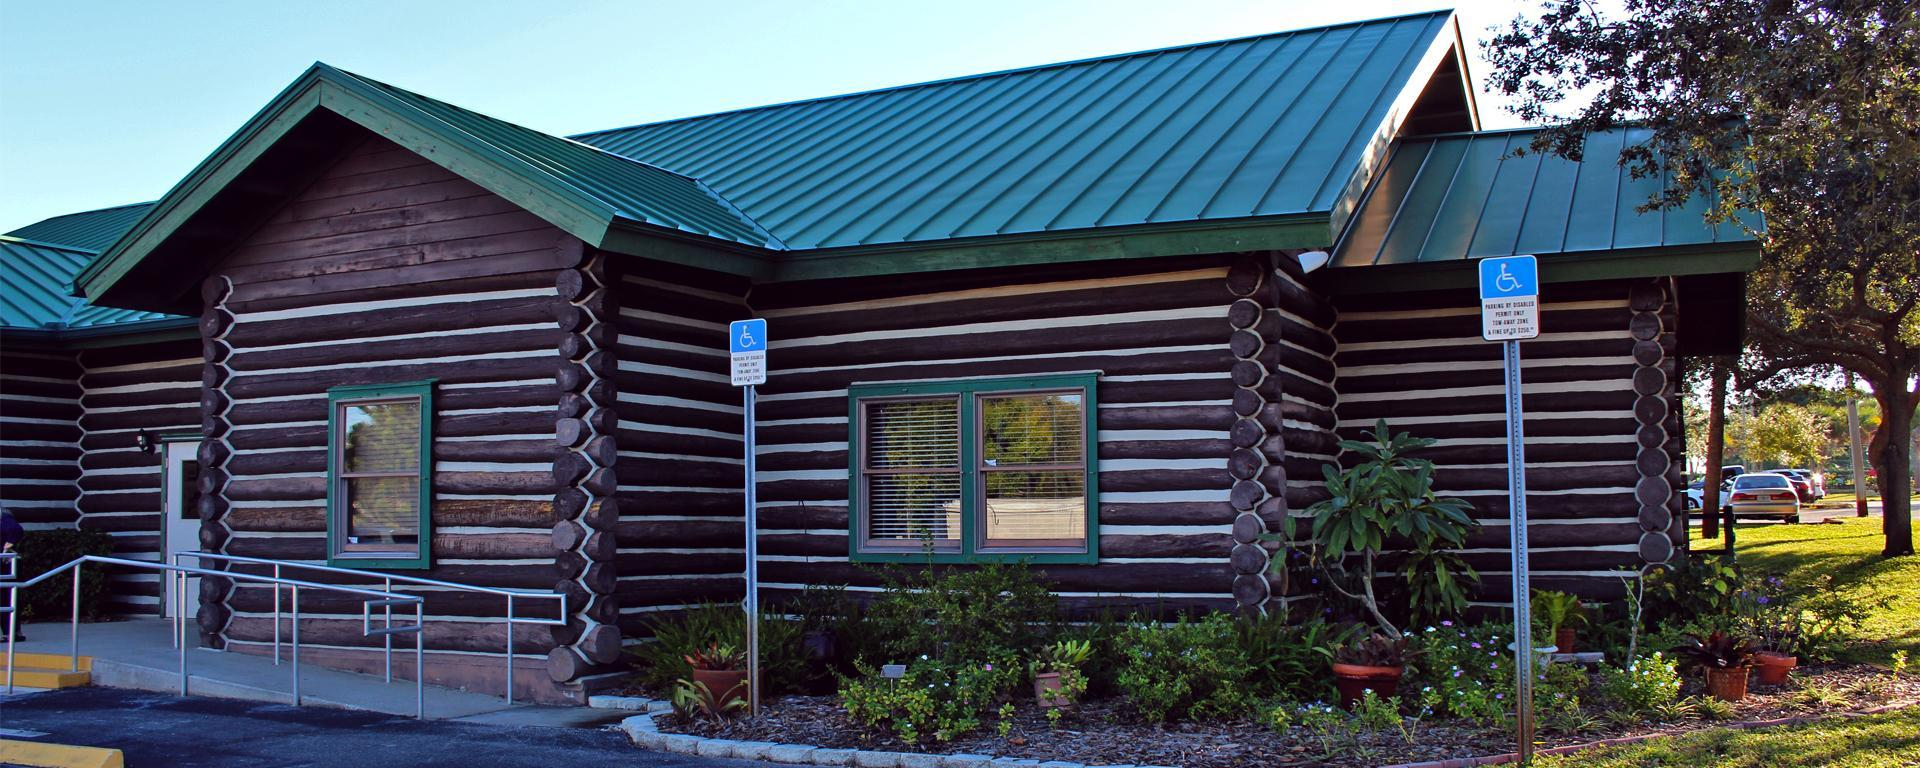 Exterior of the log cabin